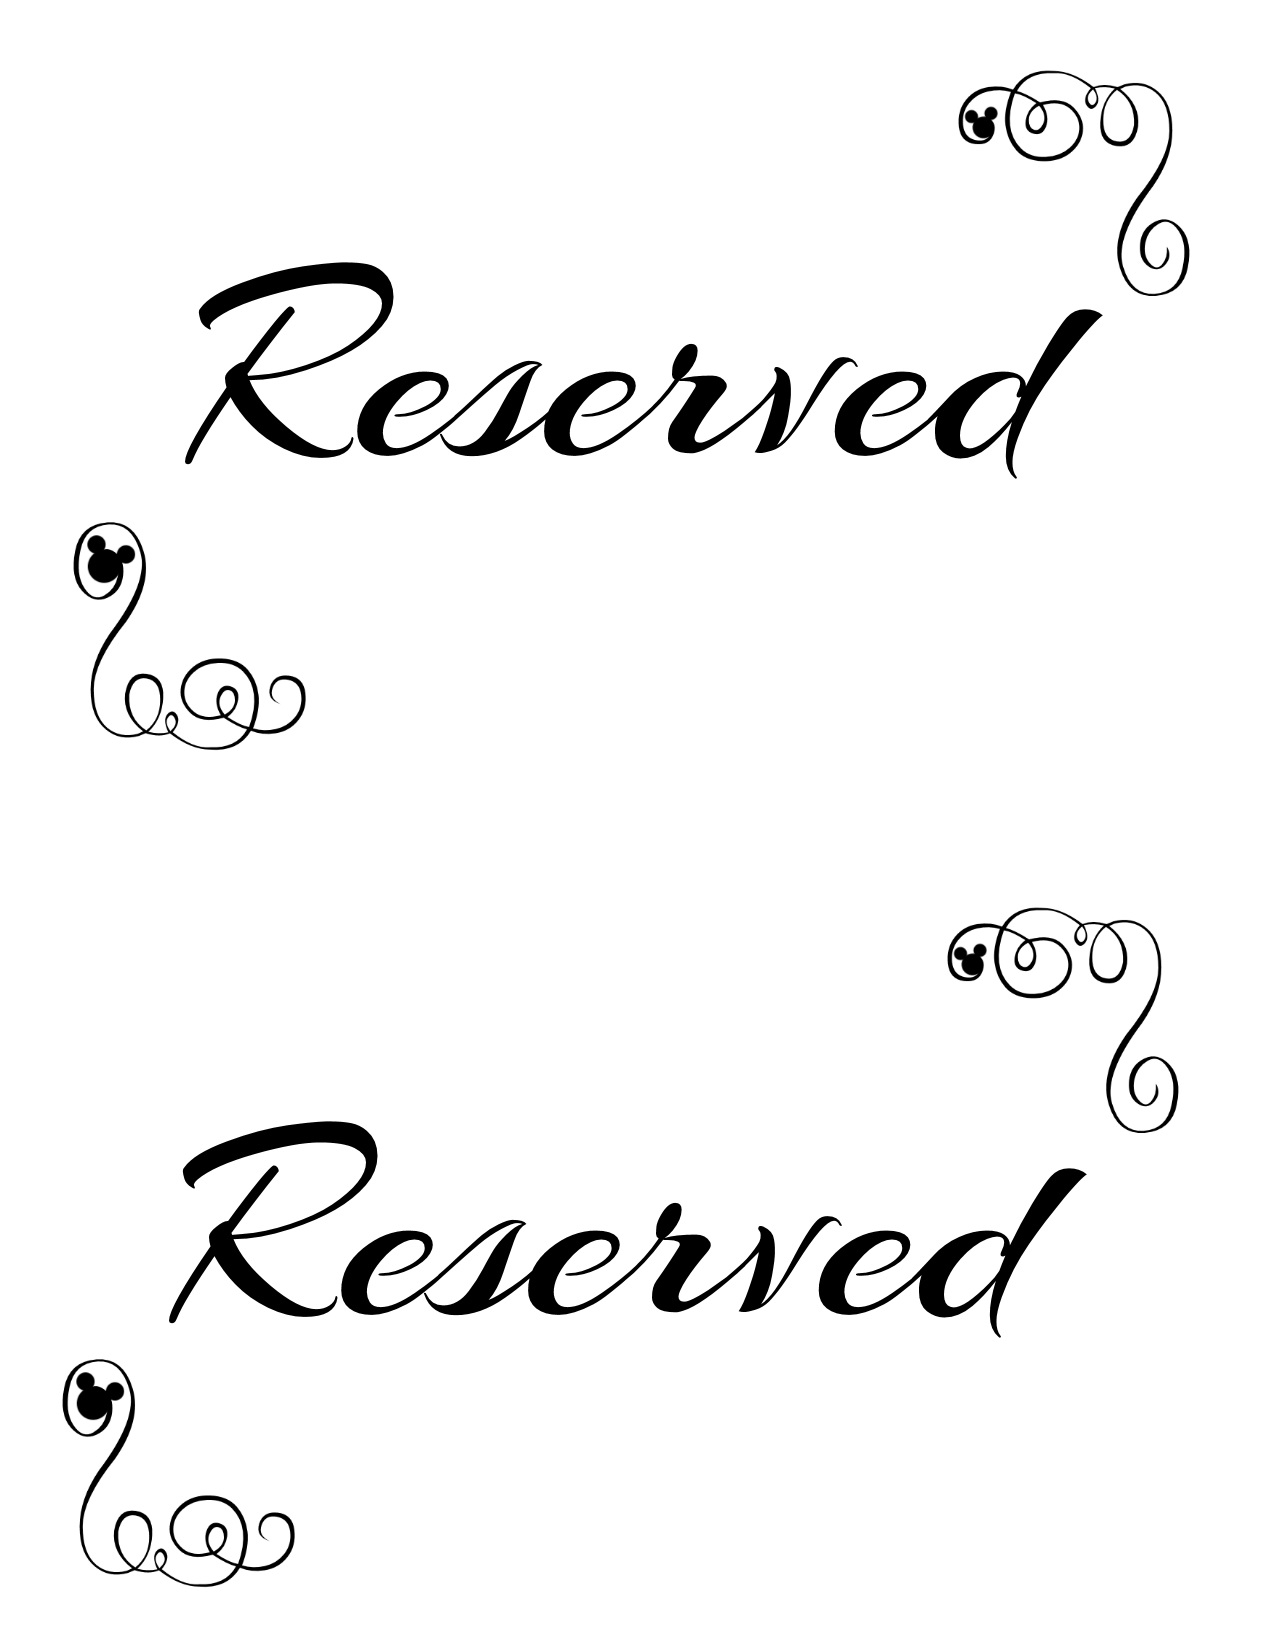 Reserved Signs Template Sivandearest